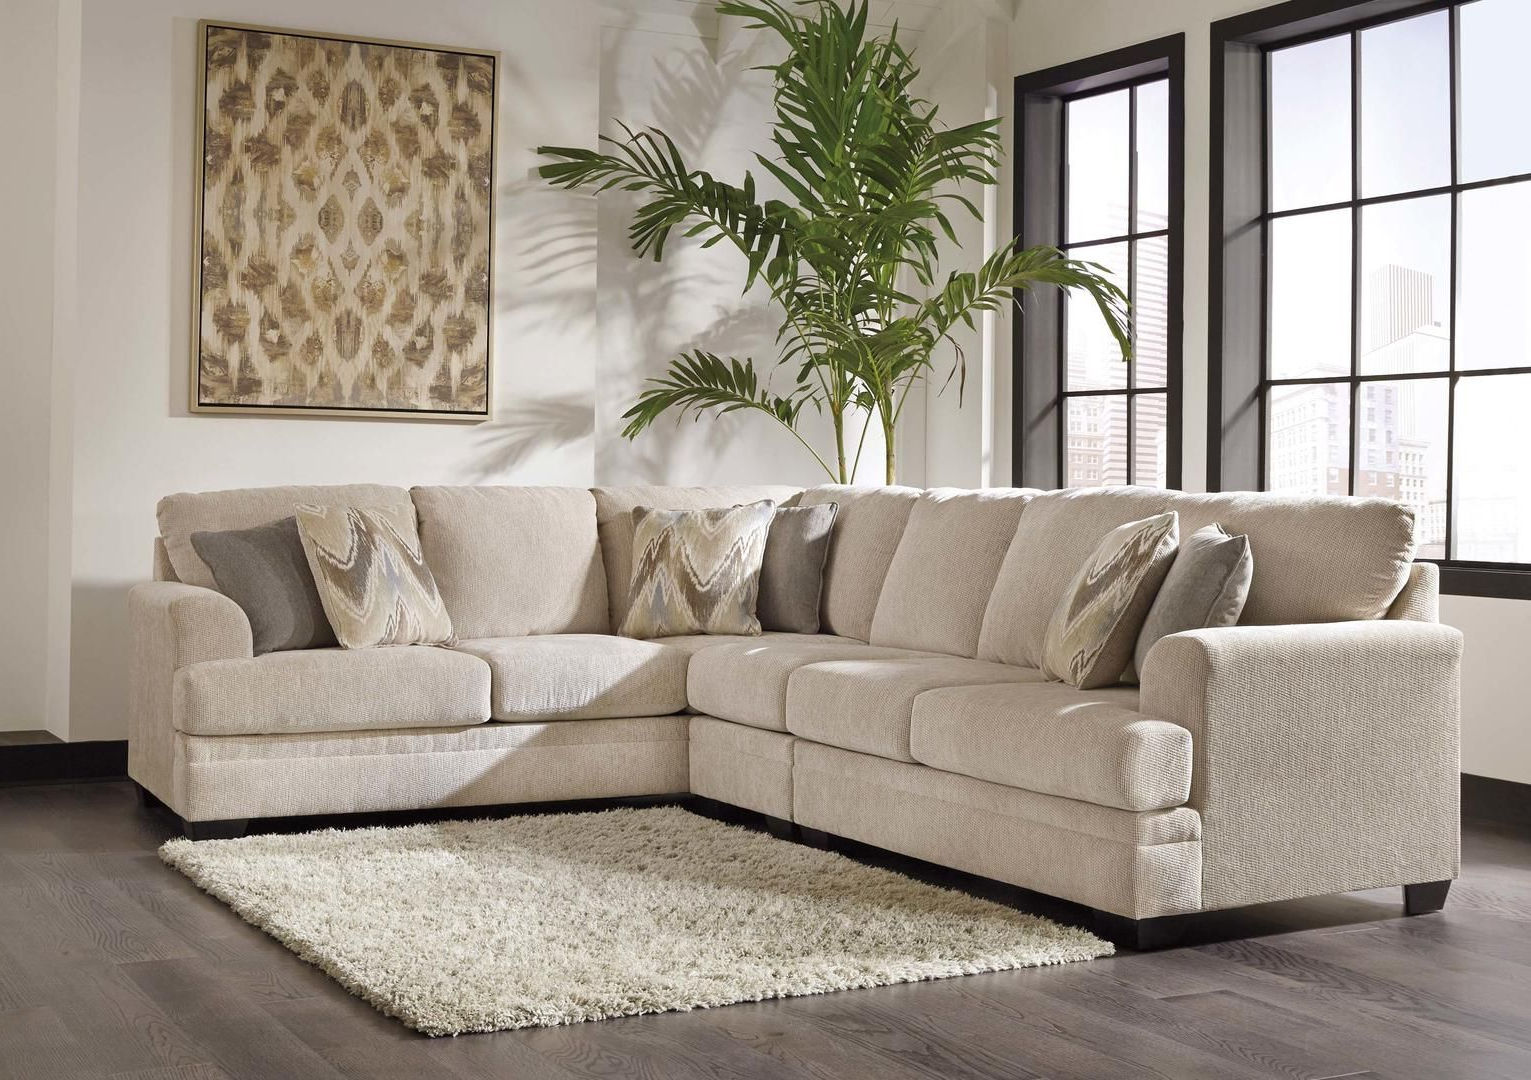 Malbry Point 3 Piece Sectionals With Laf Chaise With Regard To Popular Ameer 81806 55 46 67 3 Piece Fabric Sectional Sofa With Left Arm (View 11 of 20)